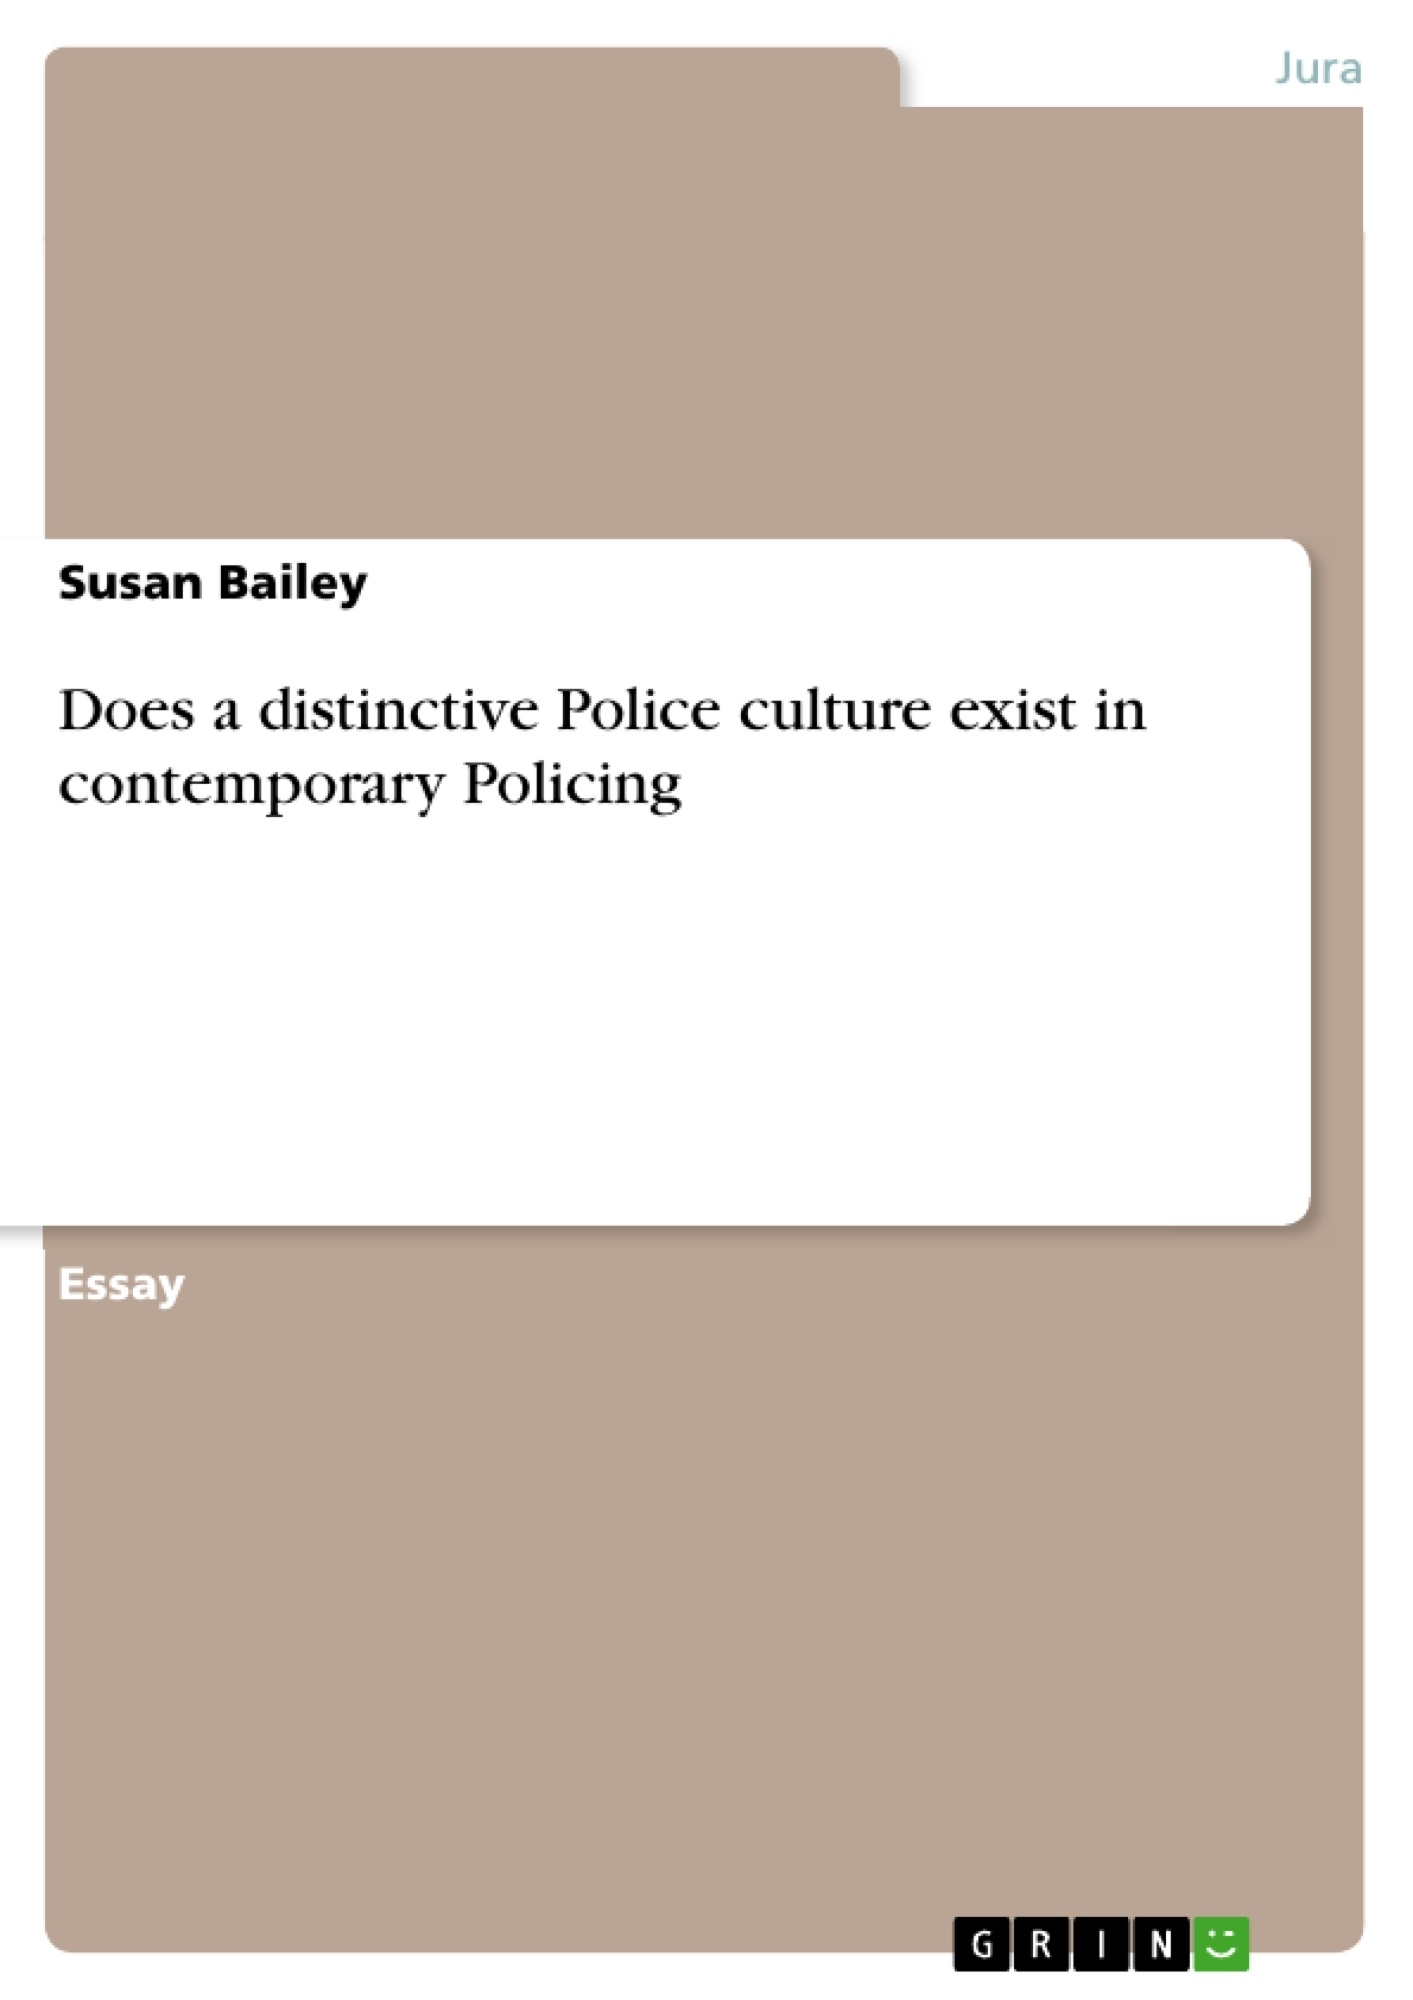 Titel: Does a distinctive Police culture exist in contemporary Policing